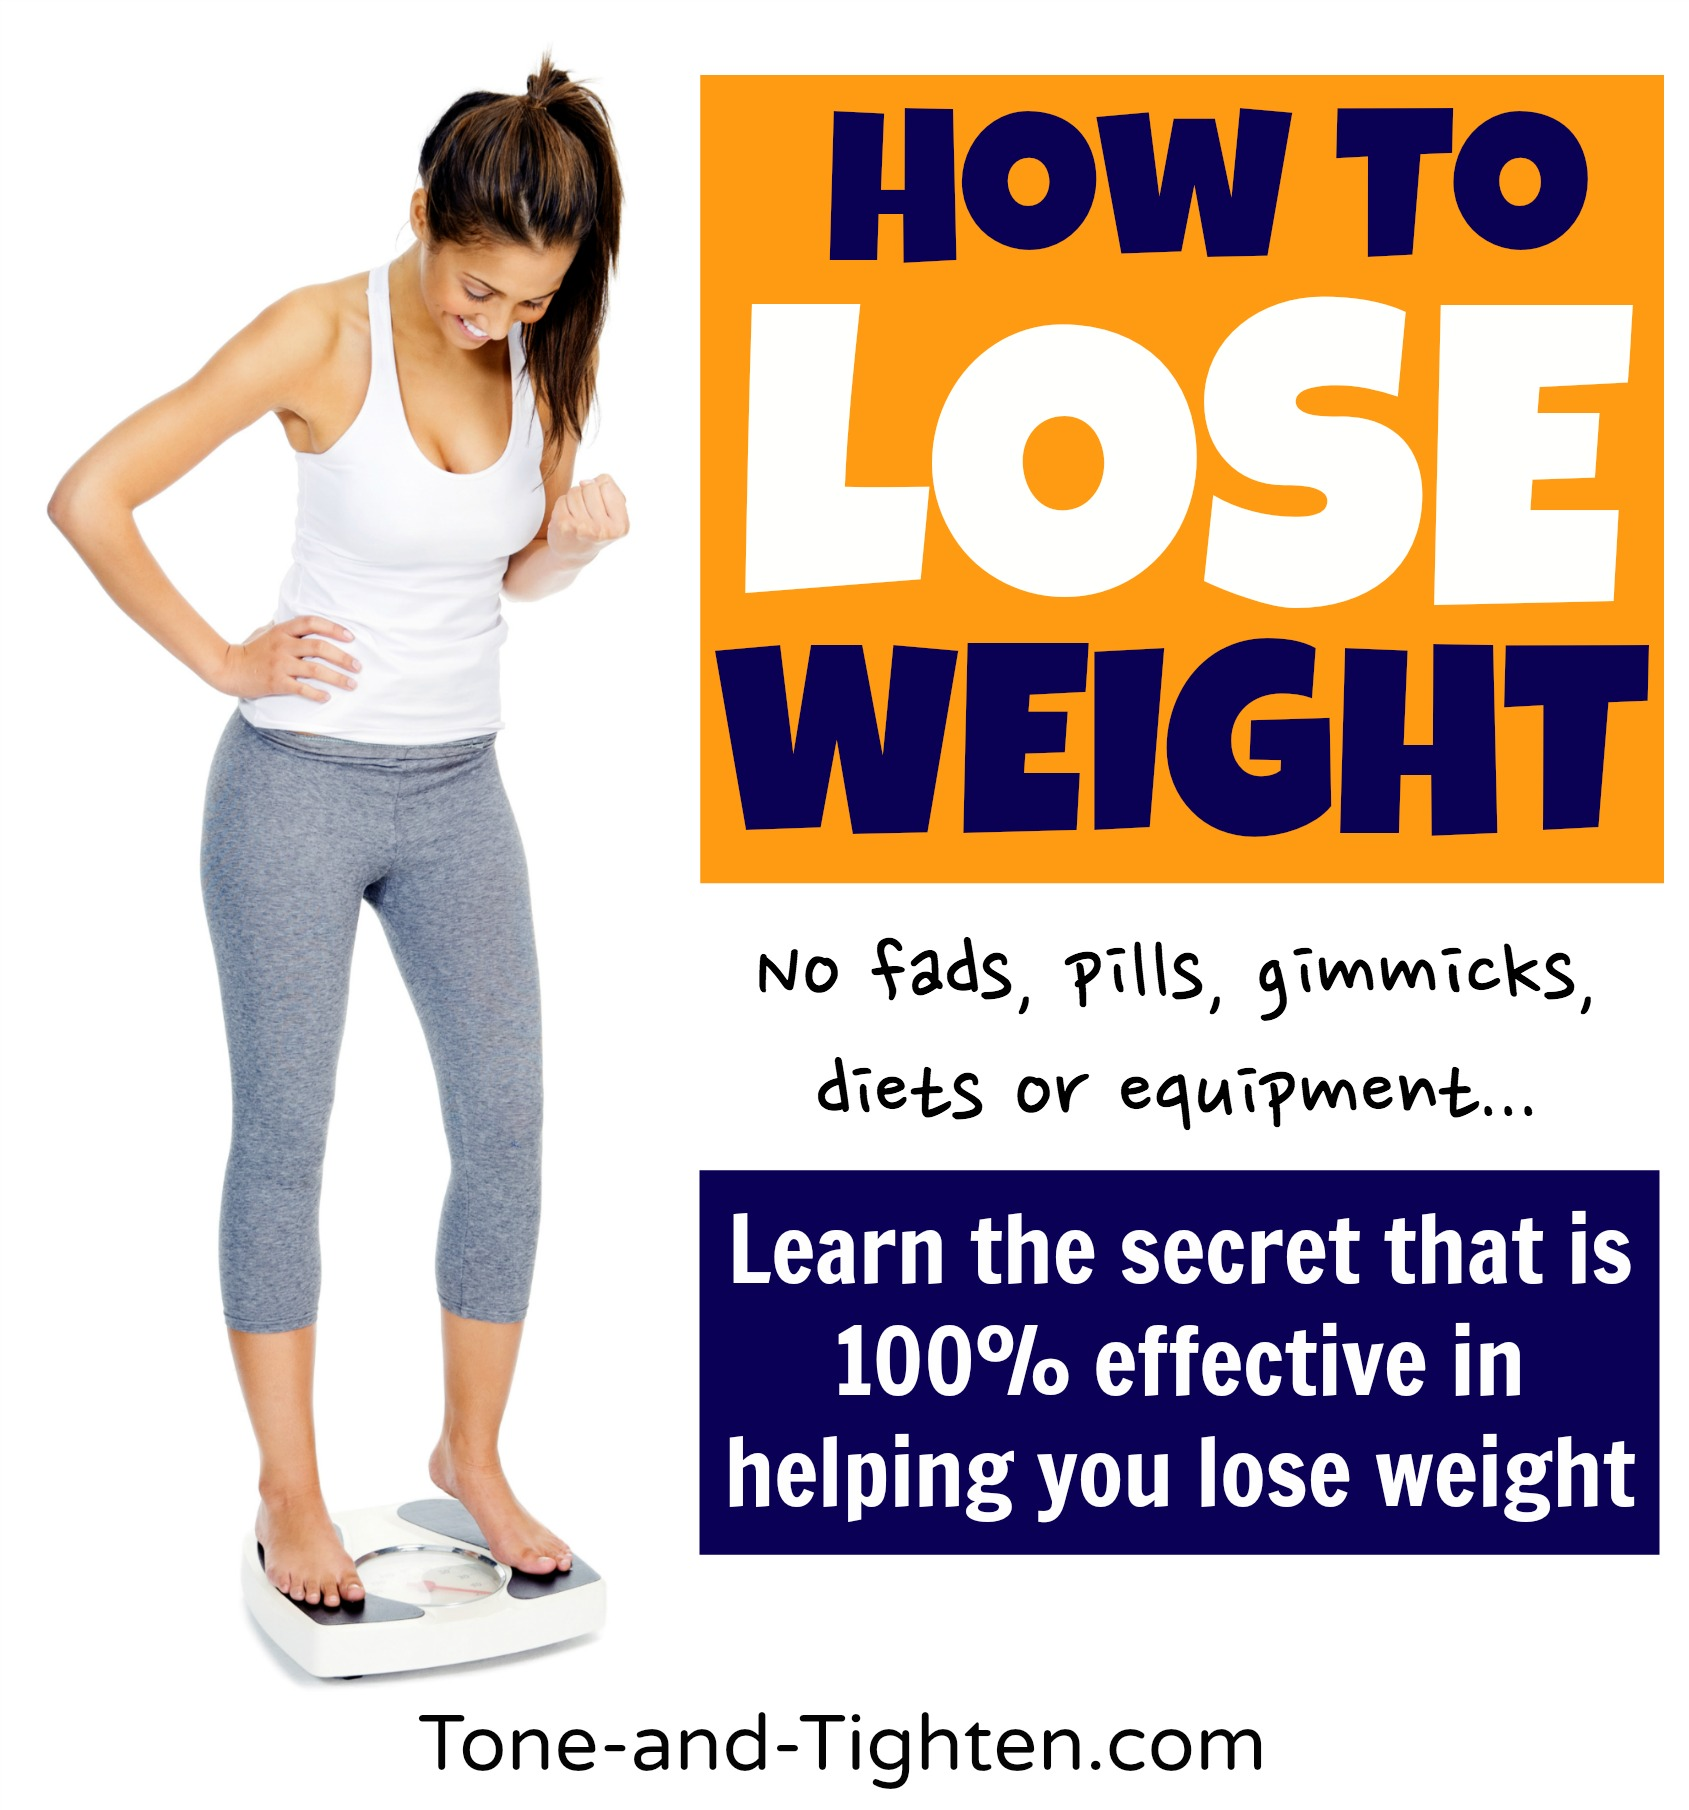 how to lose weight healthy way photo - 1